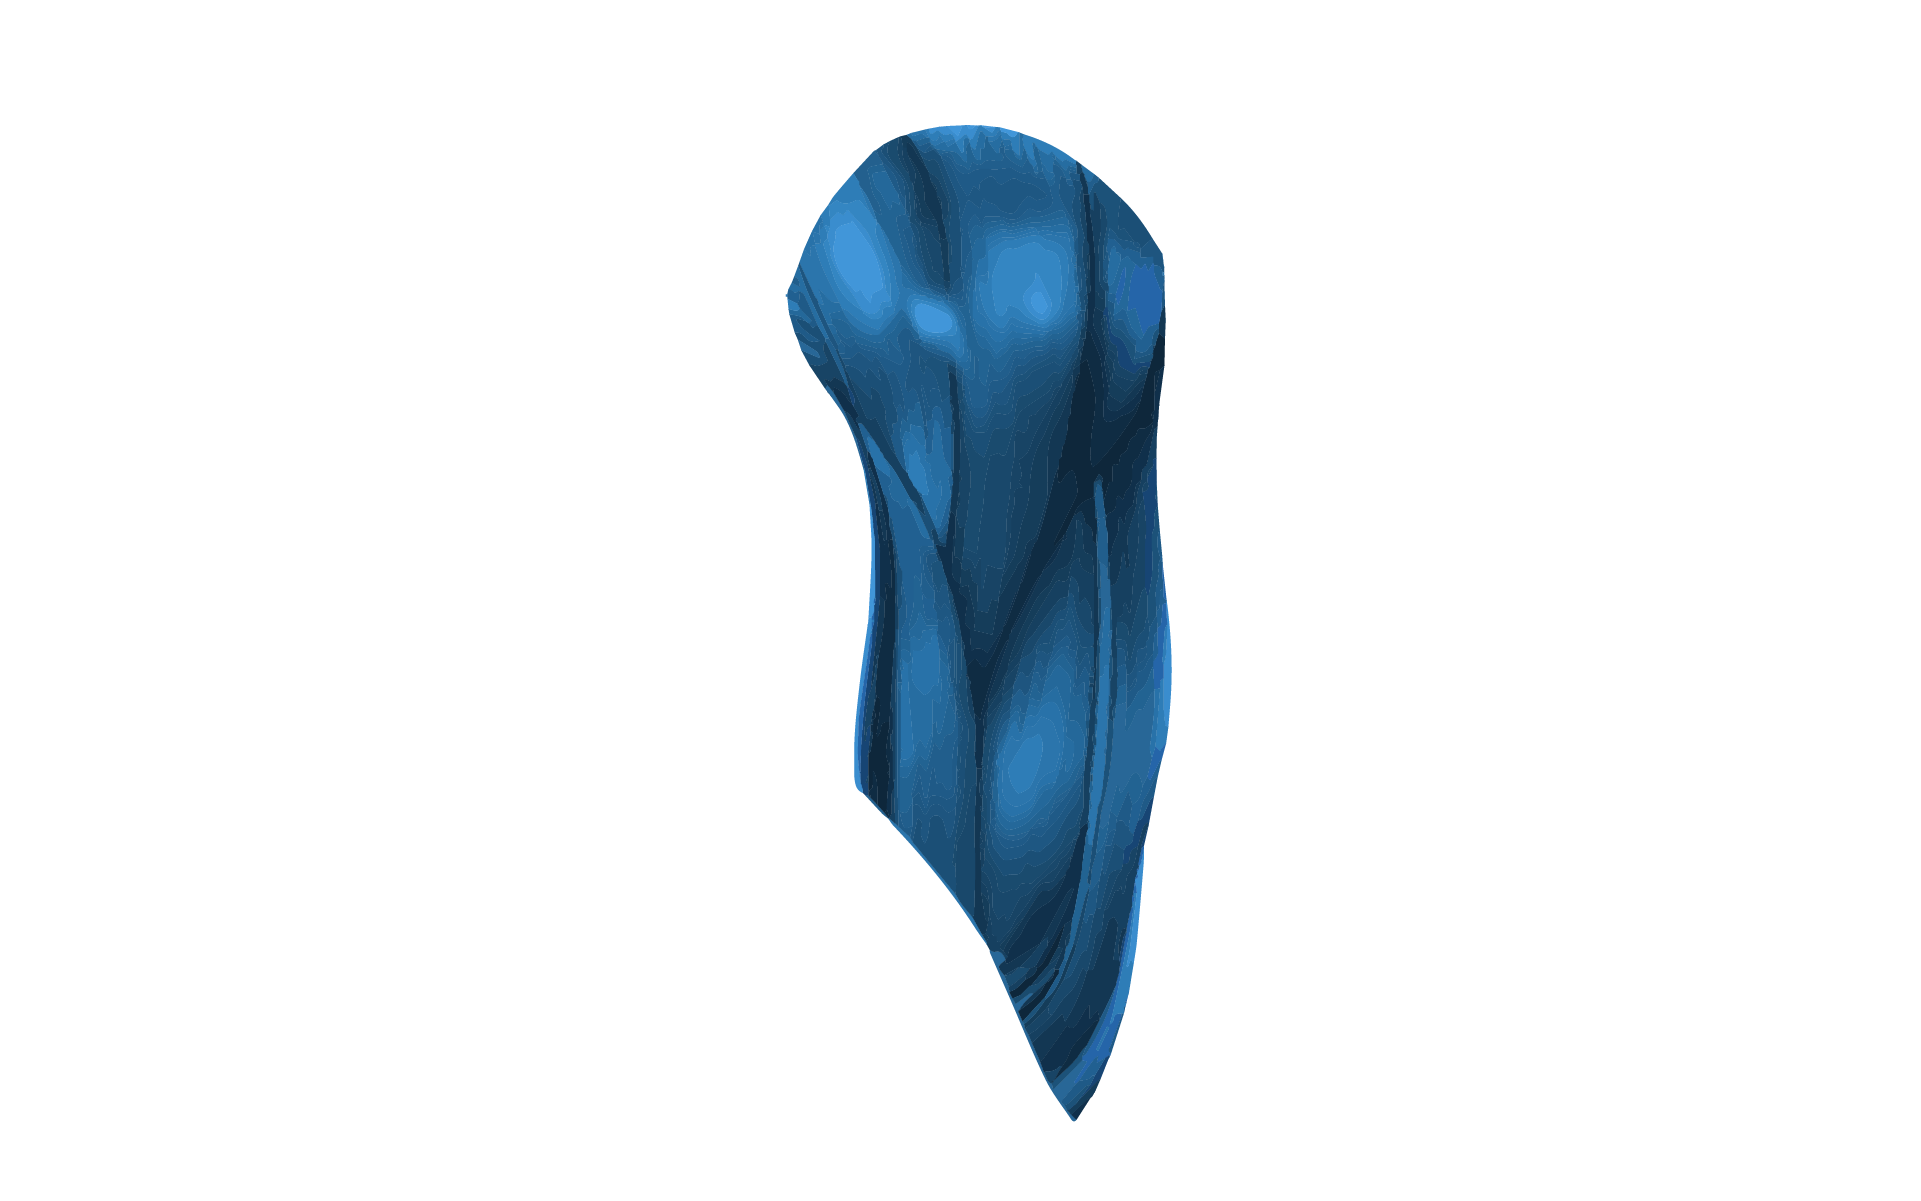 A 3D graphic image of the human muscle.